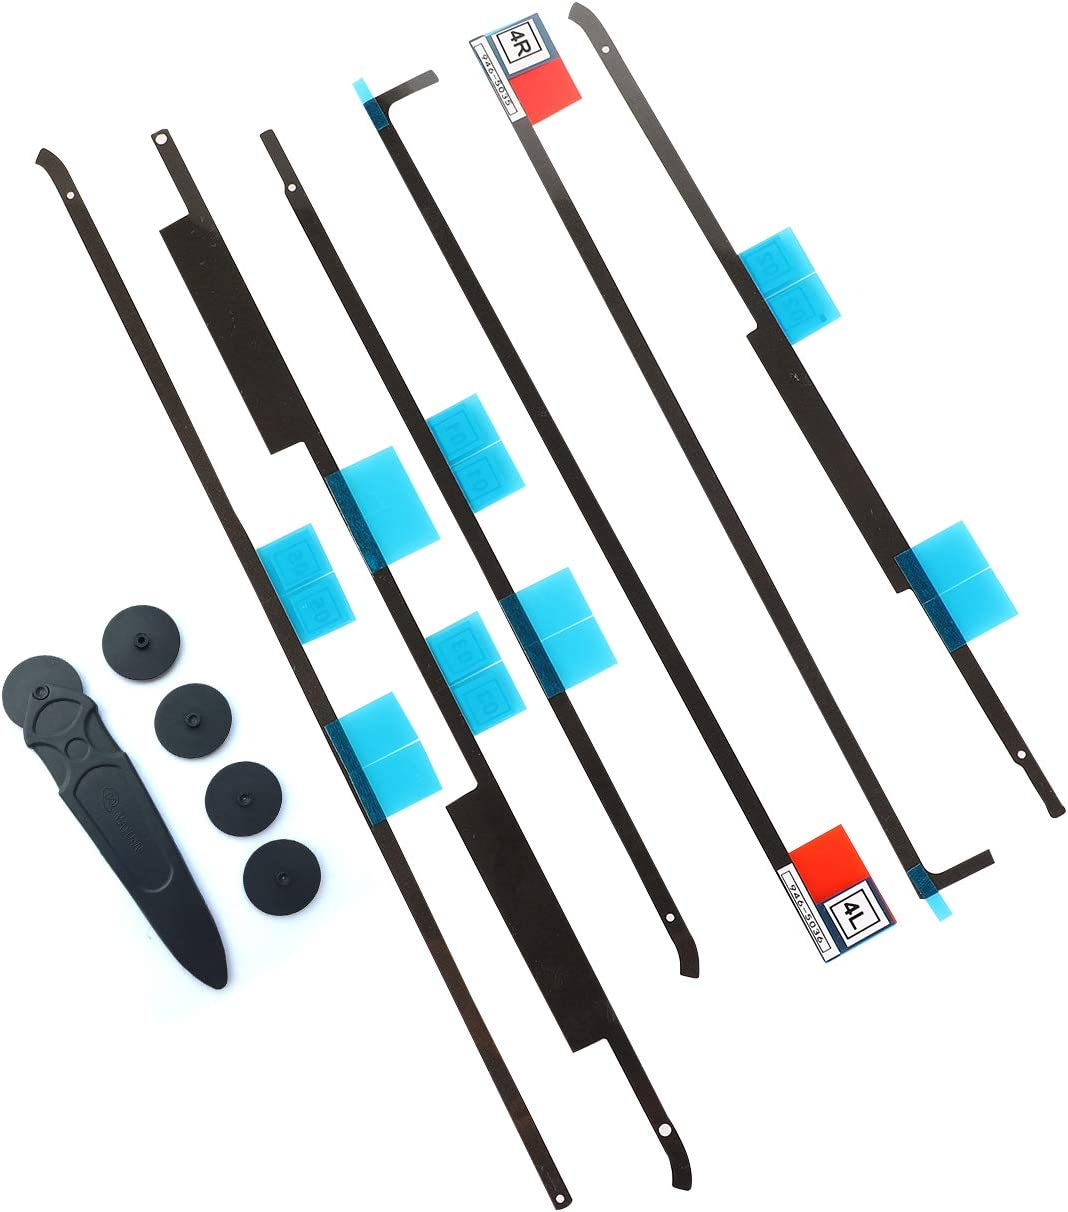 """LCD Adhesive Strip Kit (2 Sets), KKDAO LCD Screen Display Strips Stickers Replacement Tools + 2 Opening Wheel Tools, iMac 21.5"""" 2012/2013 / 2015/2017, A1418 (iMac 21.5 Inch-A1418)"""